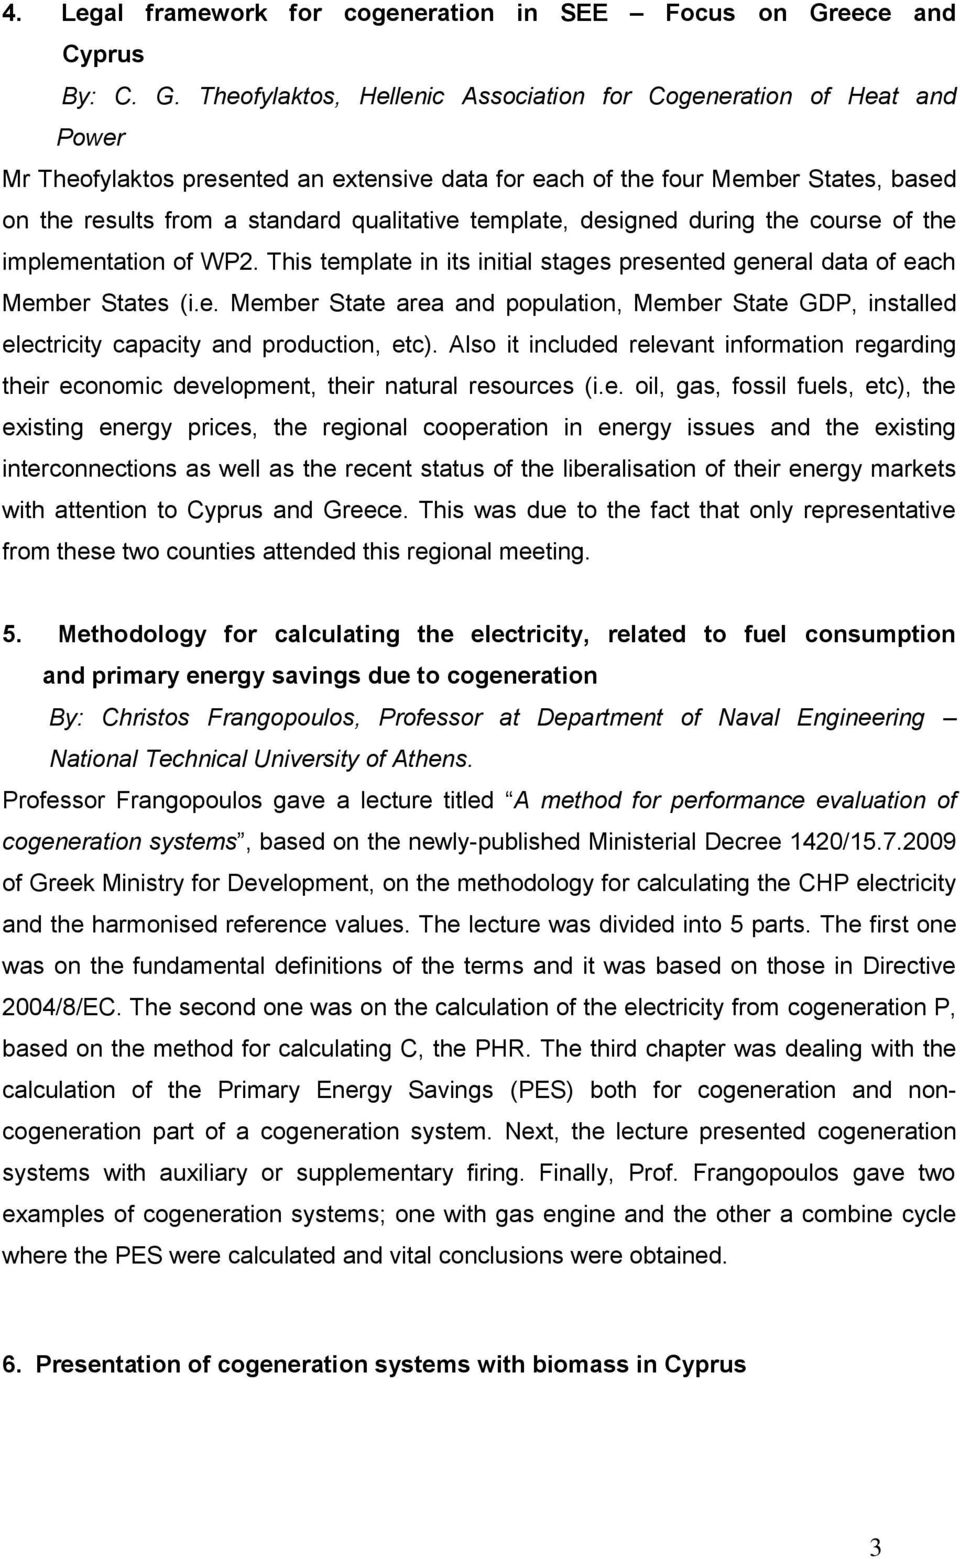 Theofylaktos, Hellenic Association for Cogeneration of Heat and Power Mr Theofylaktos presented an extensive data for each of the four Member States, based on the results from a standard qualitative